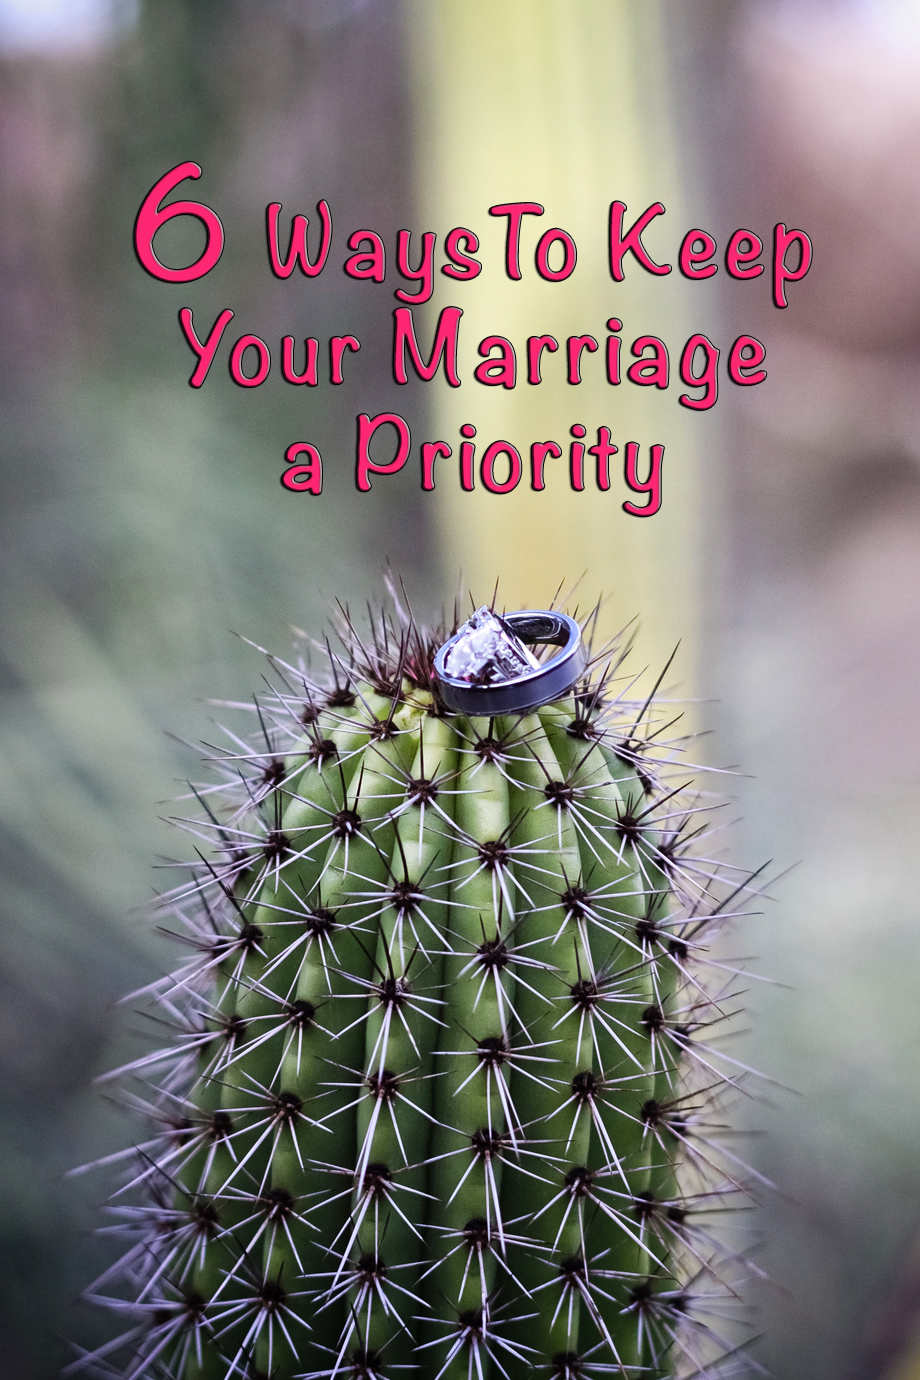 6 Ways to Keep Your Marriage a Priority, Scottsdale Moms Blog